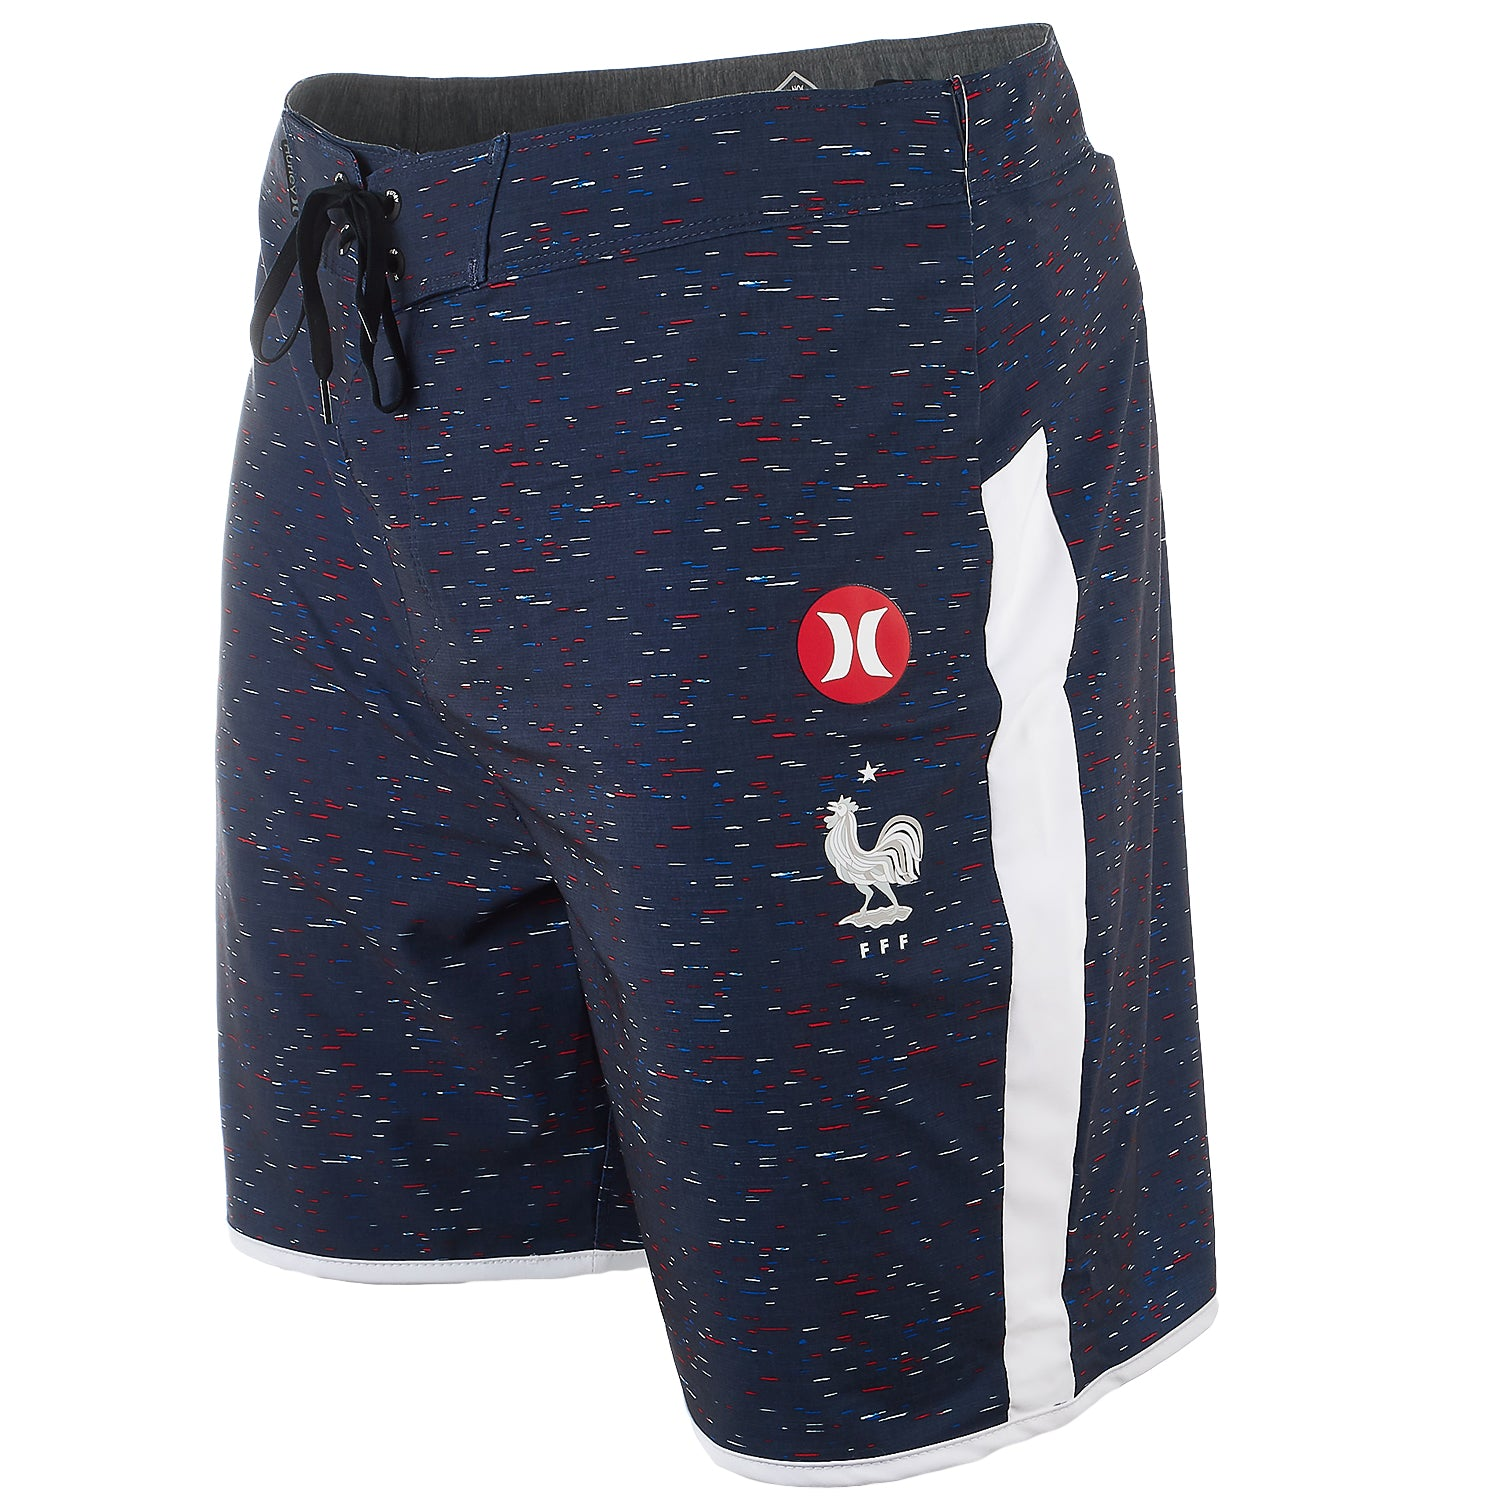 923c9fa621 Hurley Phantom France National Team 18 Boardshorts - Men's ...